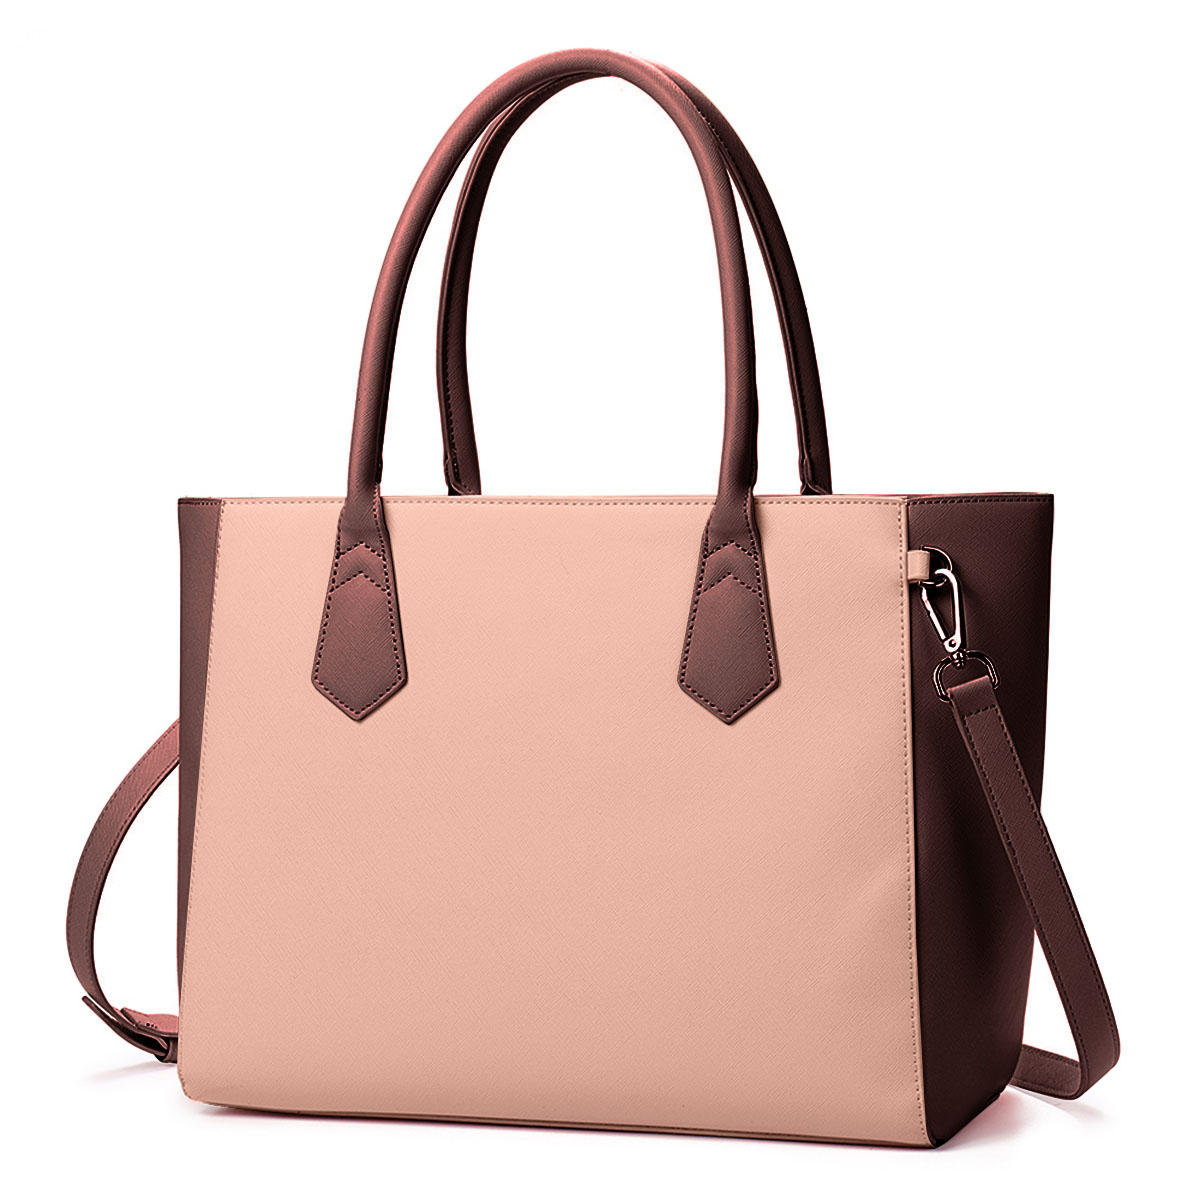 Women Fashion Casual Shopping Multifunction Patchwork Shoulder Bag Handbag, Brenice  - buy with discount